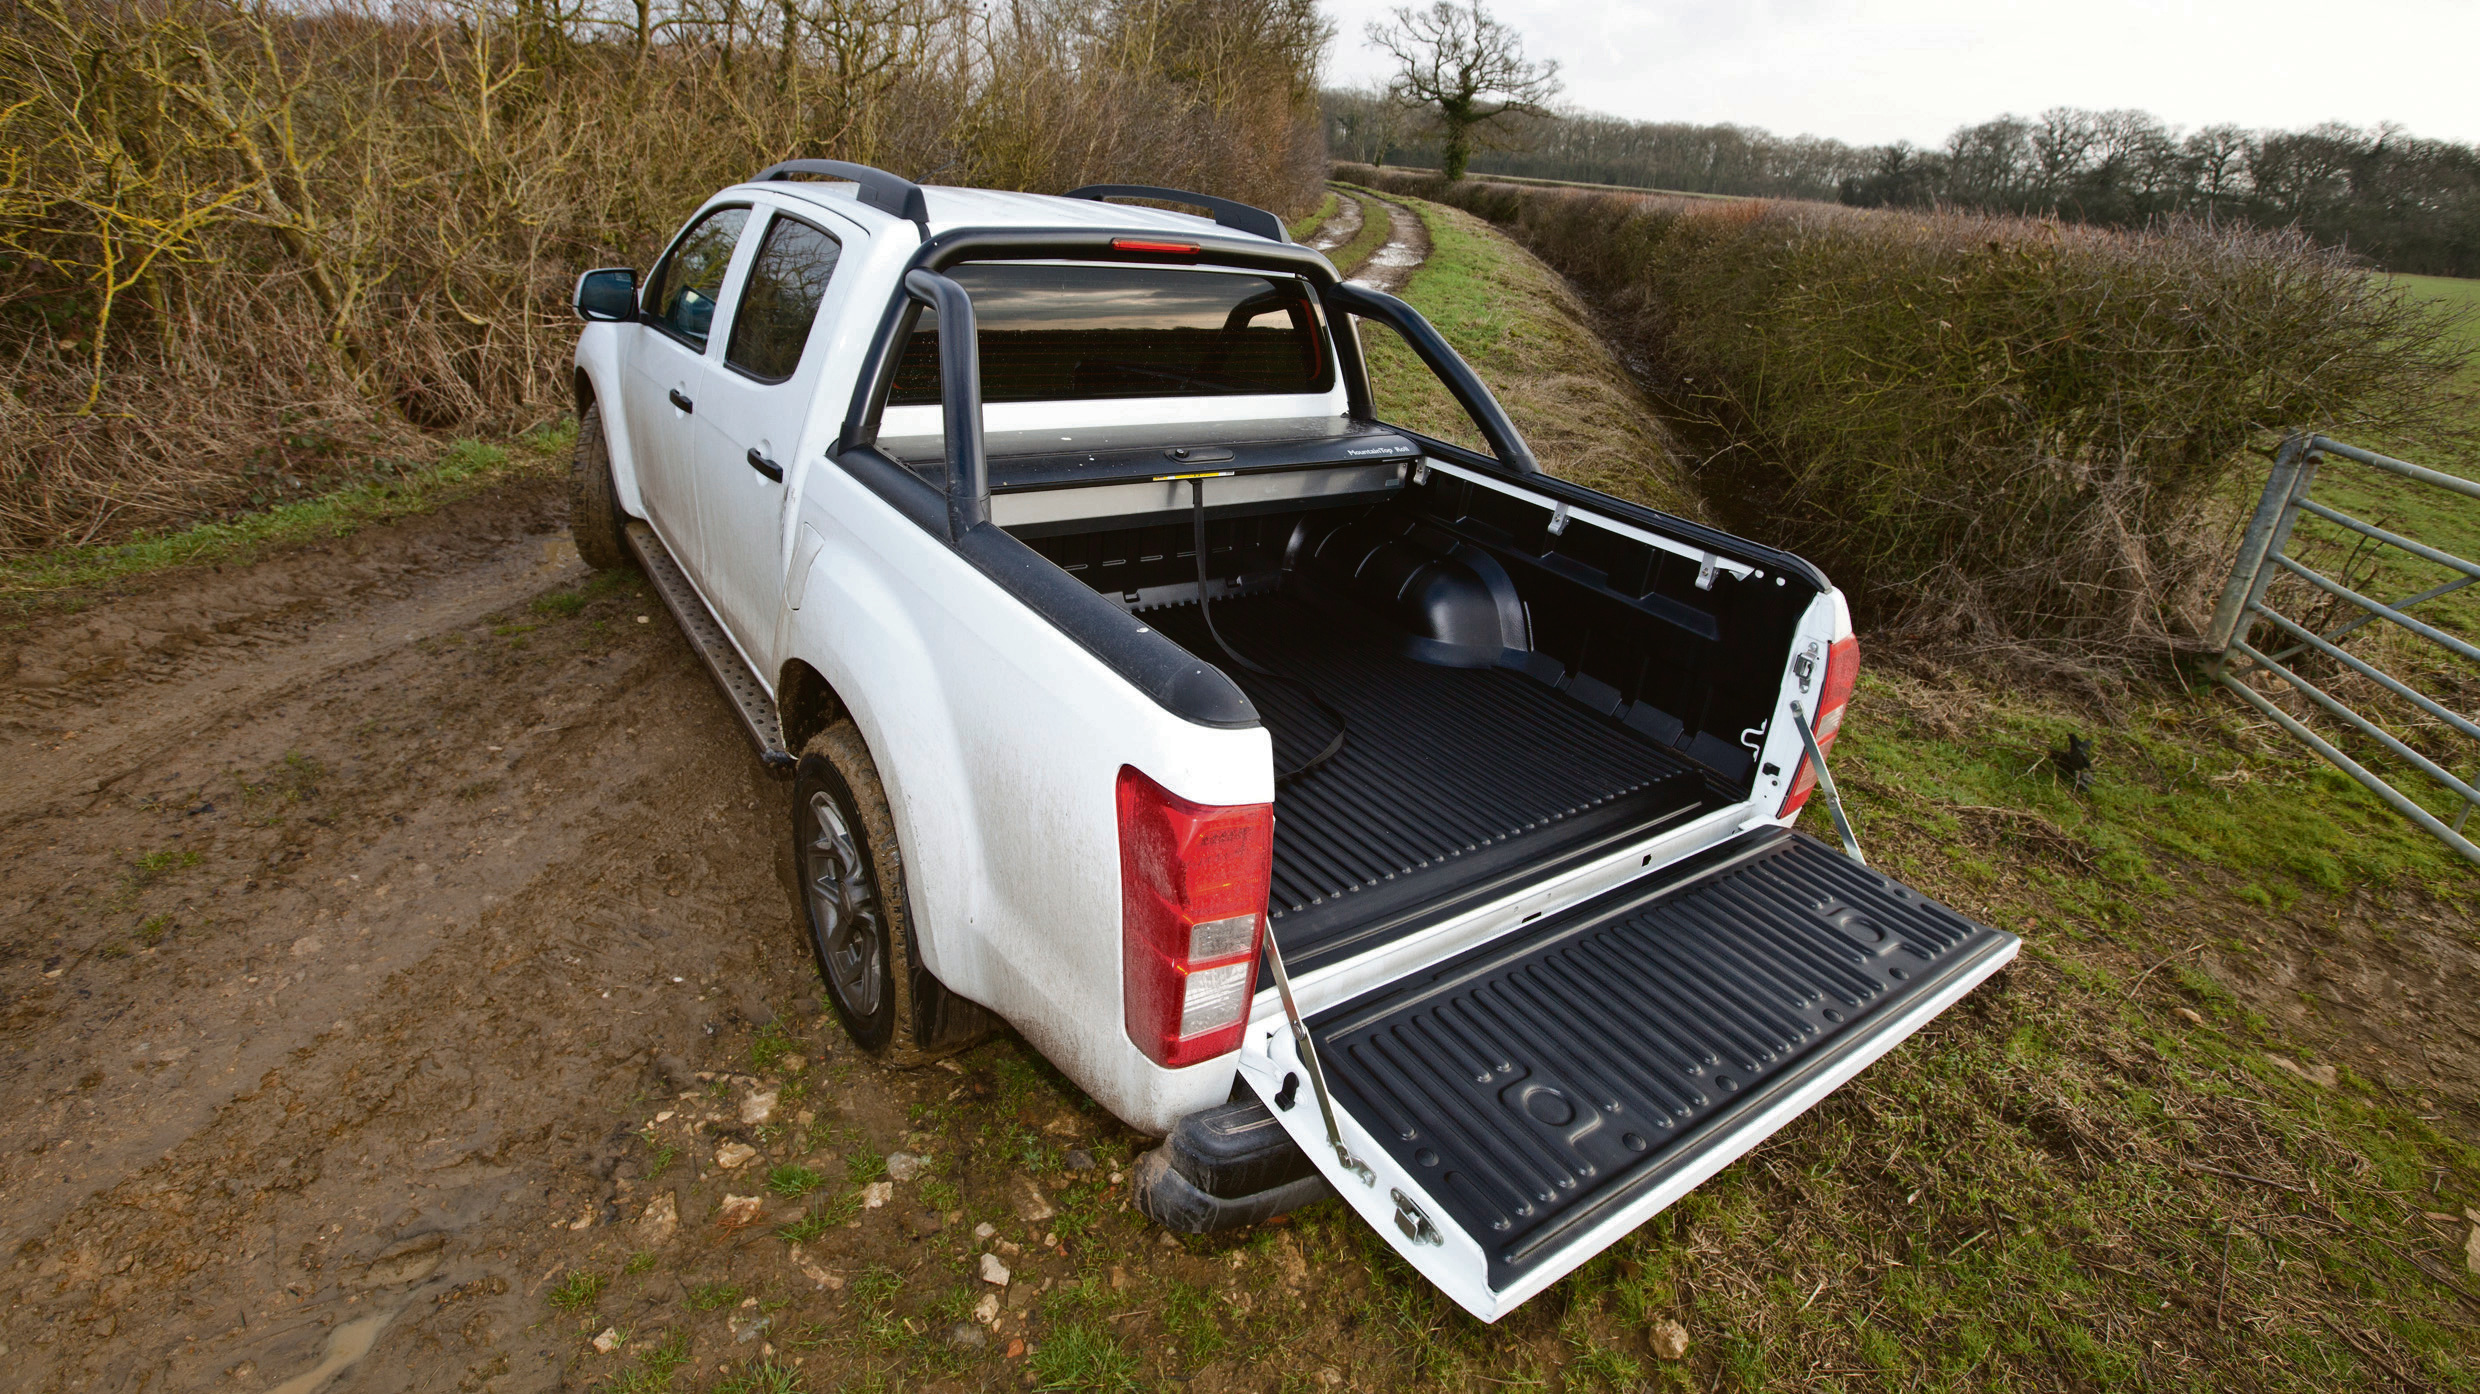 The D-max back tray